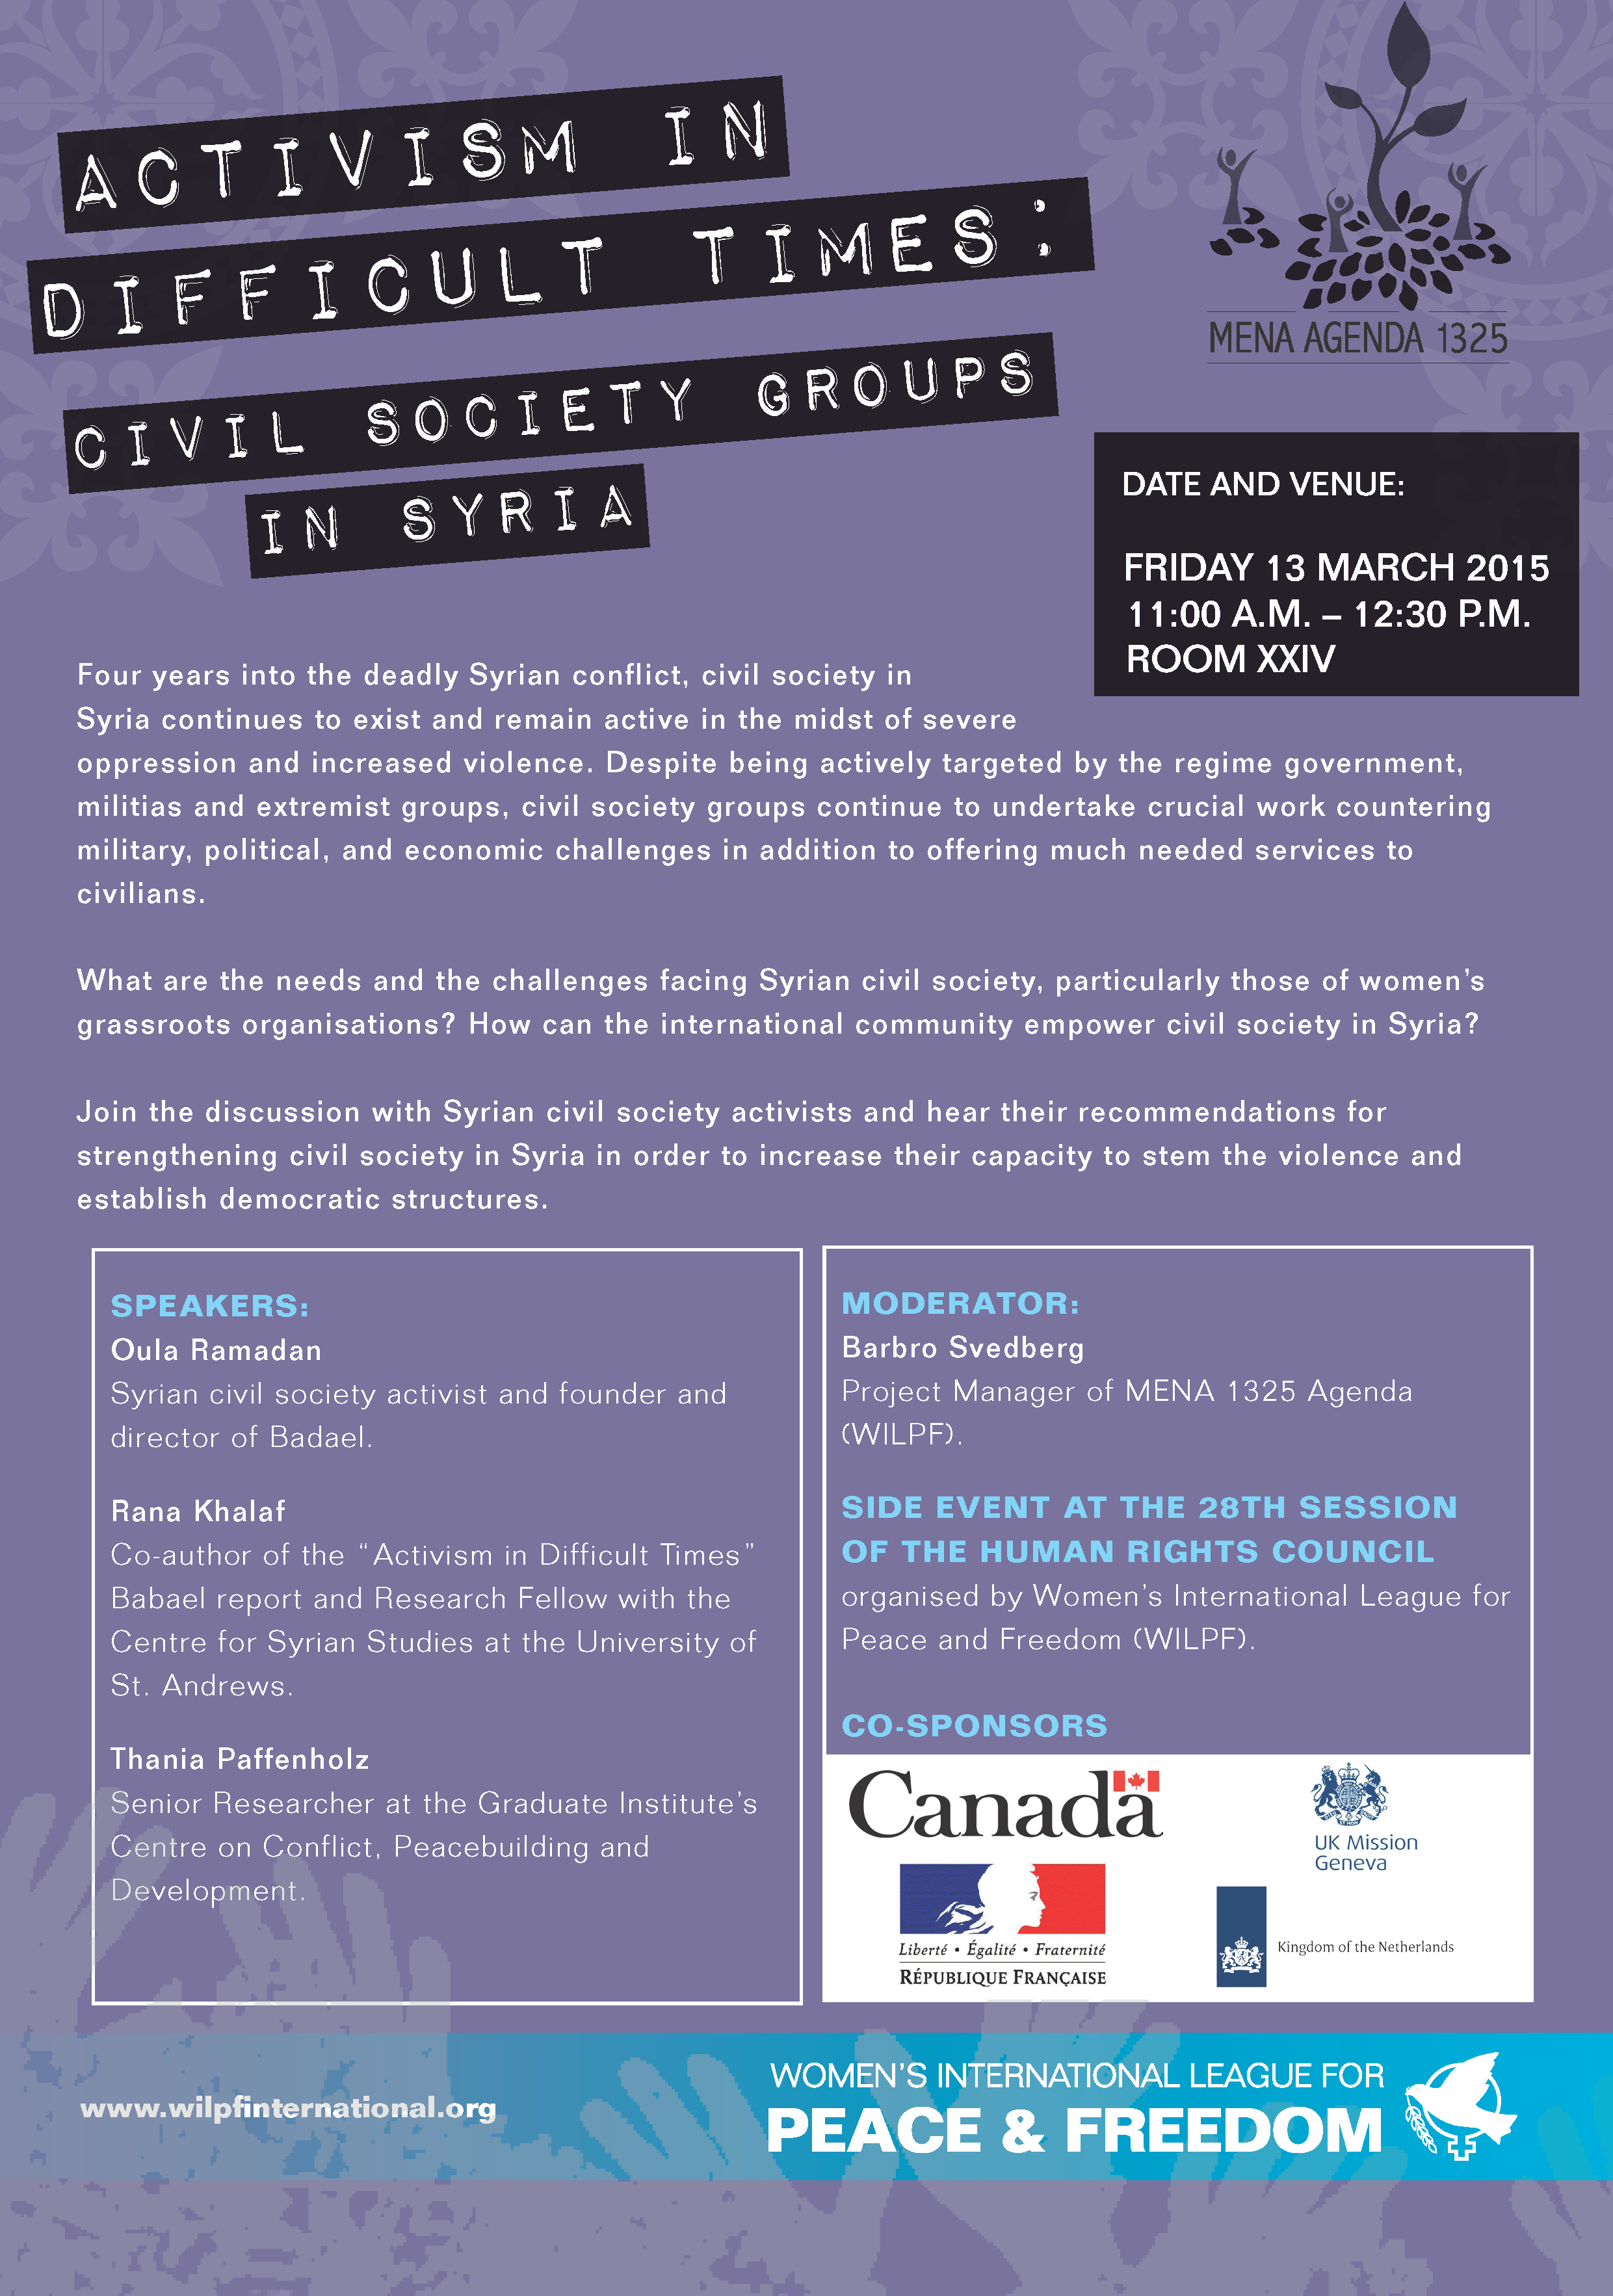 WILPF Syria Side Event Flyer Photo